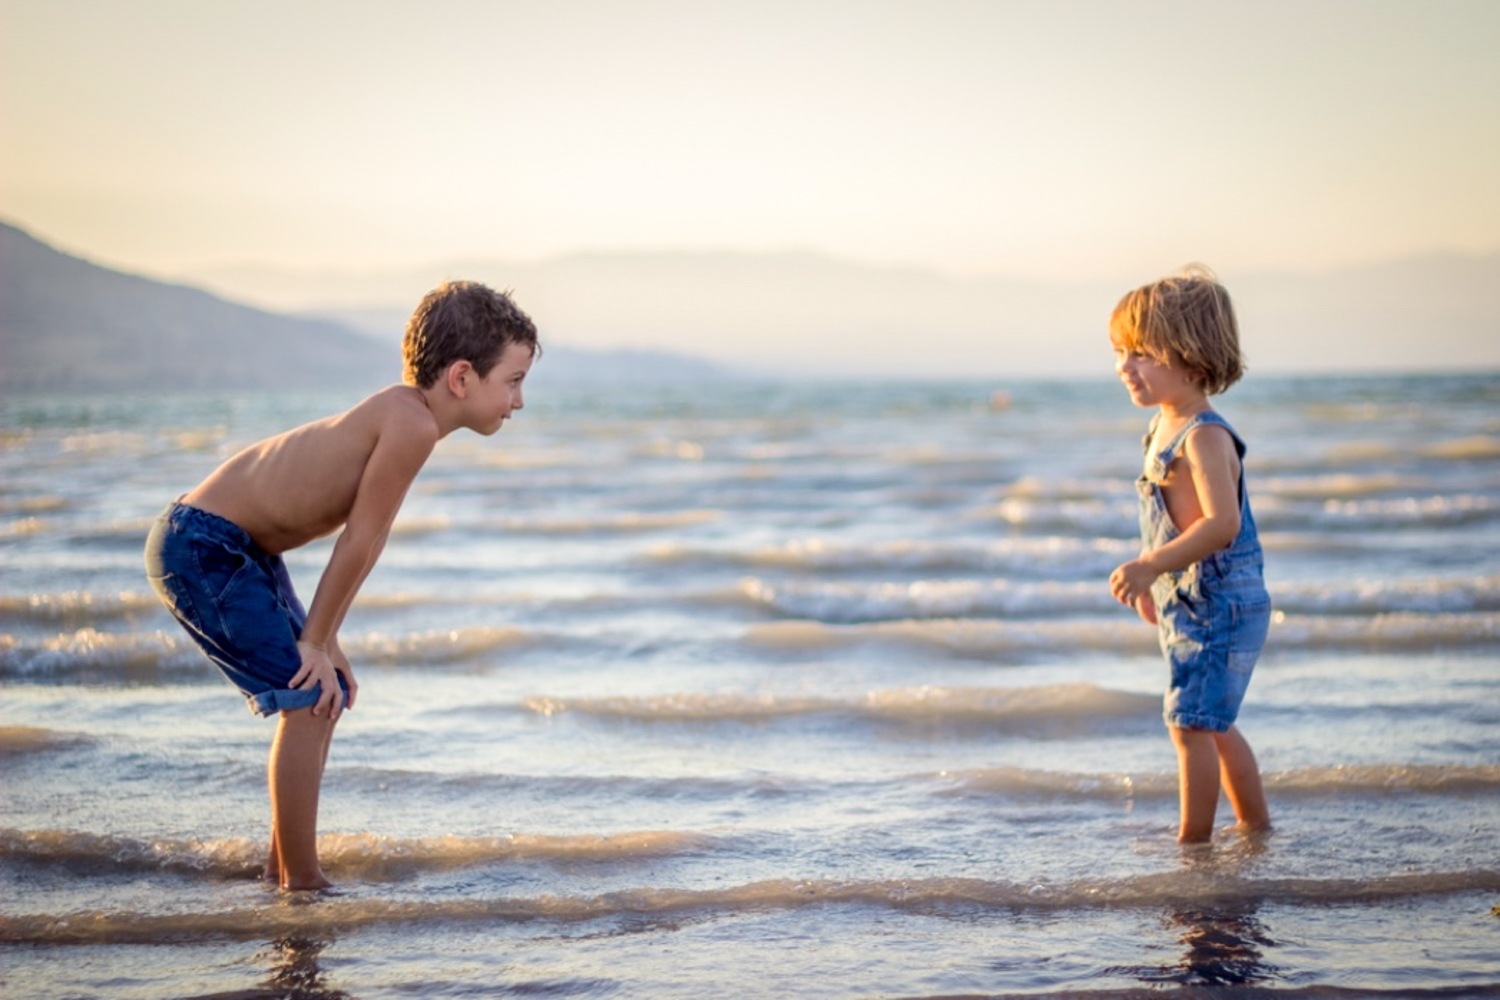 Two Kids Playing in the Sea